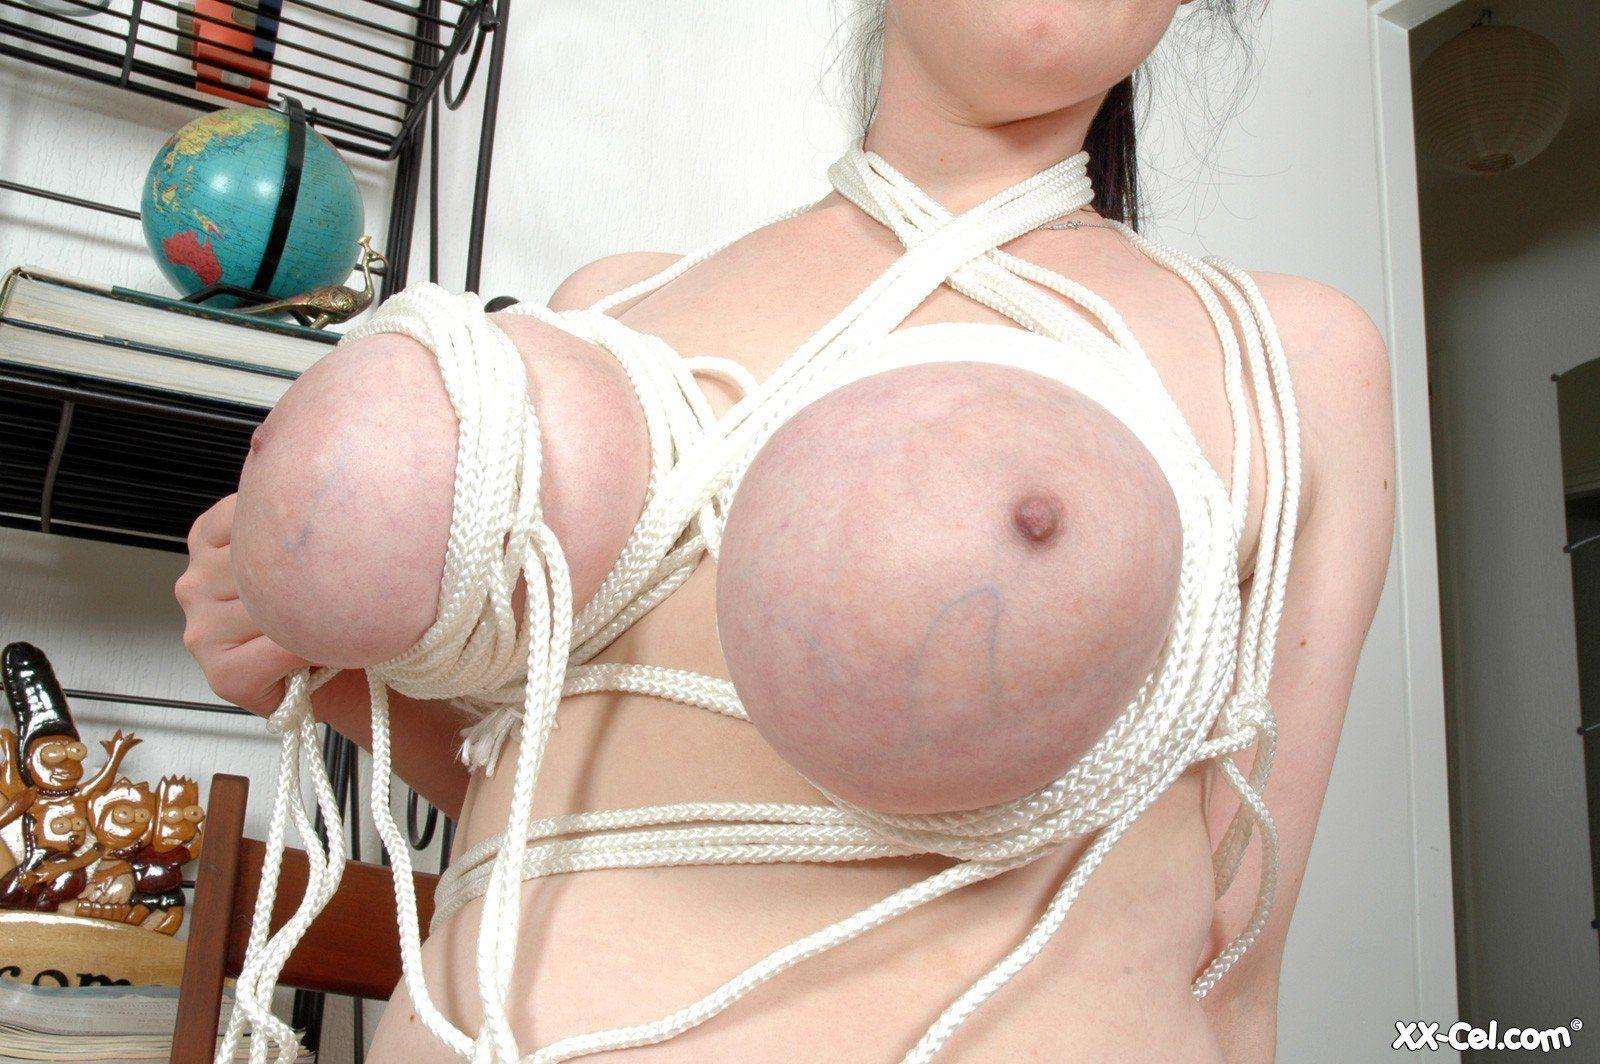 Shaved latina tight pussy